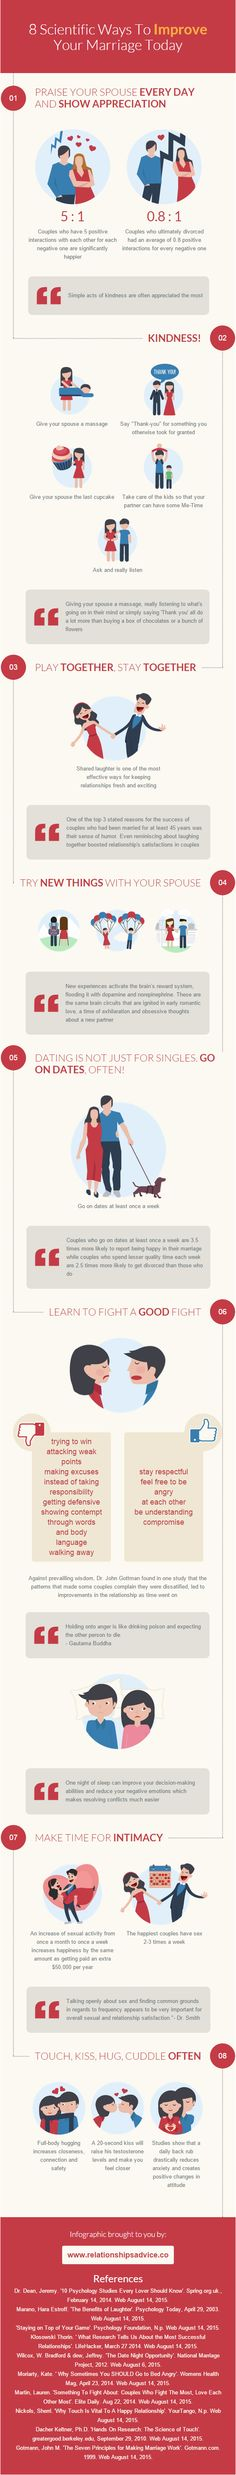 8 Scientific Ways To Improve Your Marriage Today #infographic #Relationship